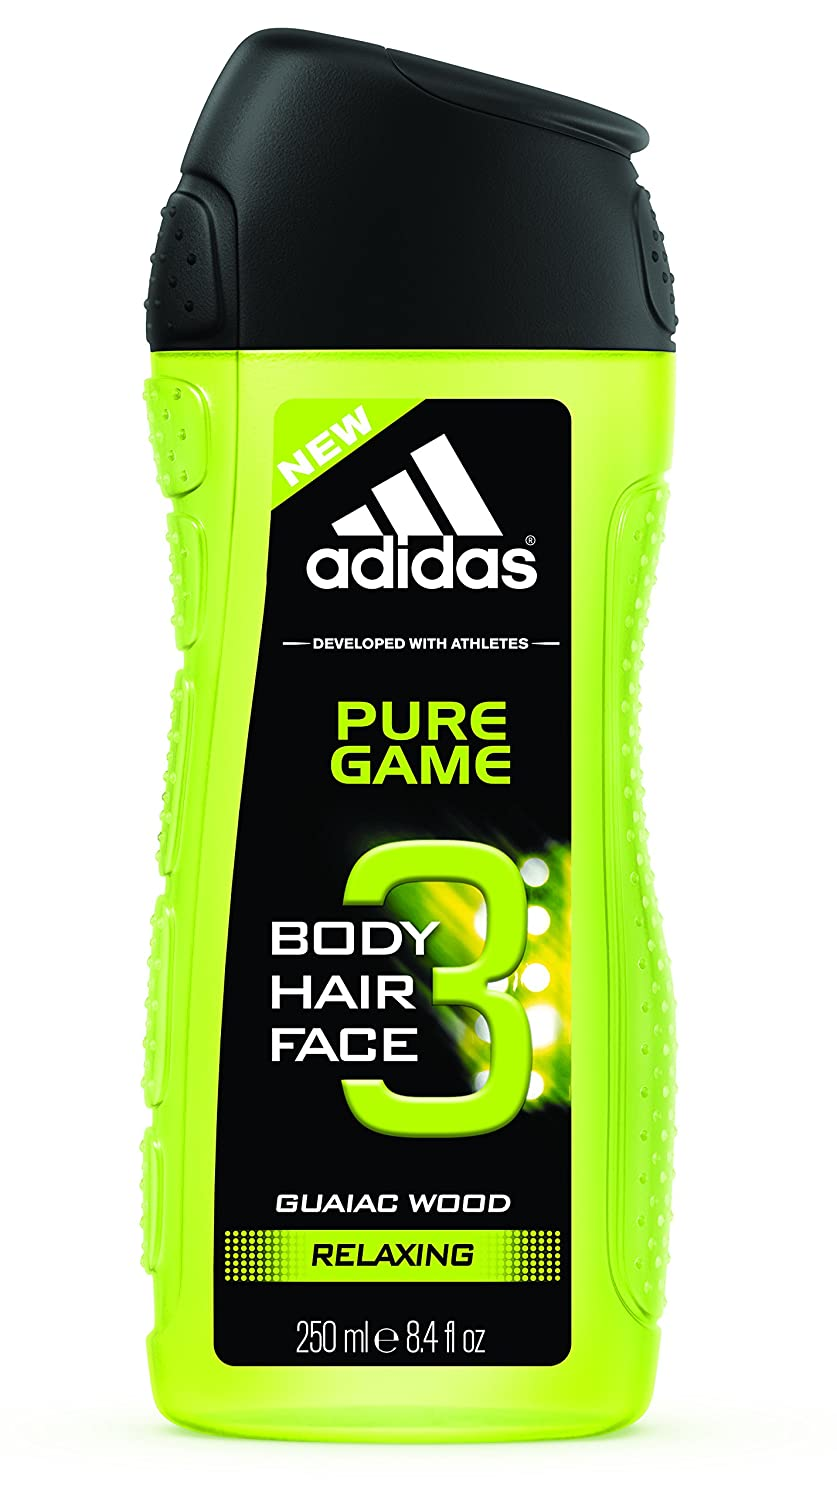 Adidas Pure Game Body Spray and Shower Gel Duo Gift Set Coty 31669400000